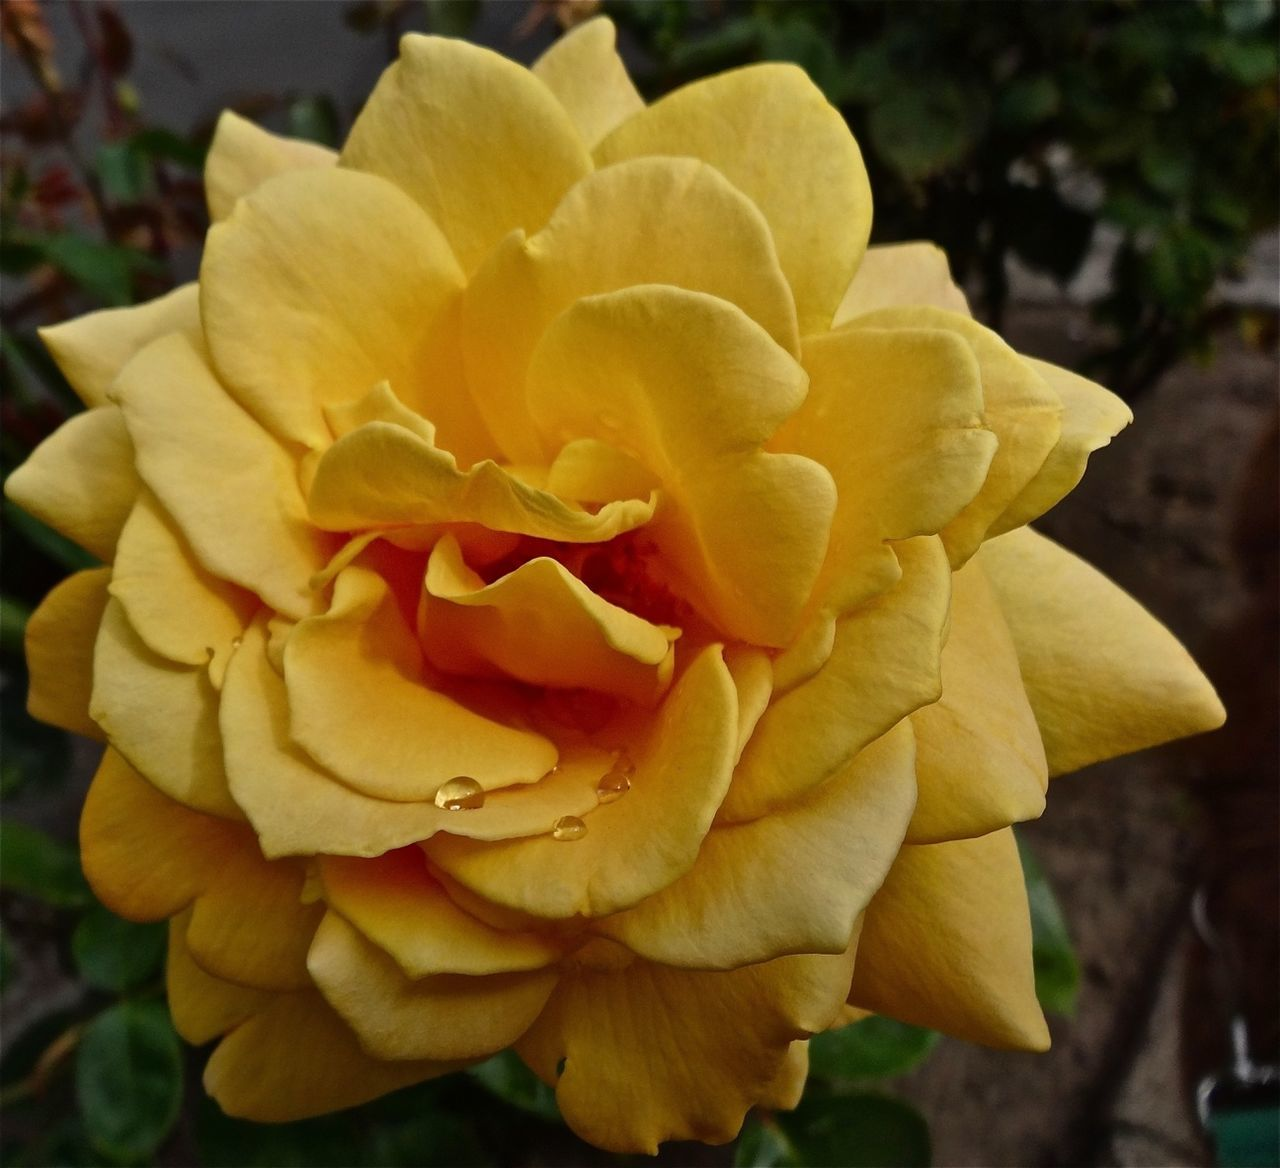 flower, petal, nature, beauty in nature, growth, plant, fragility, flower head, blooming, no people, outdoors, beauty, close-up, yellow, freshness, day